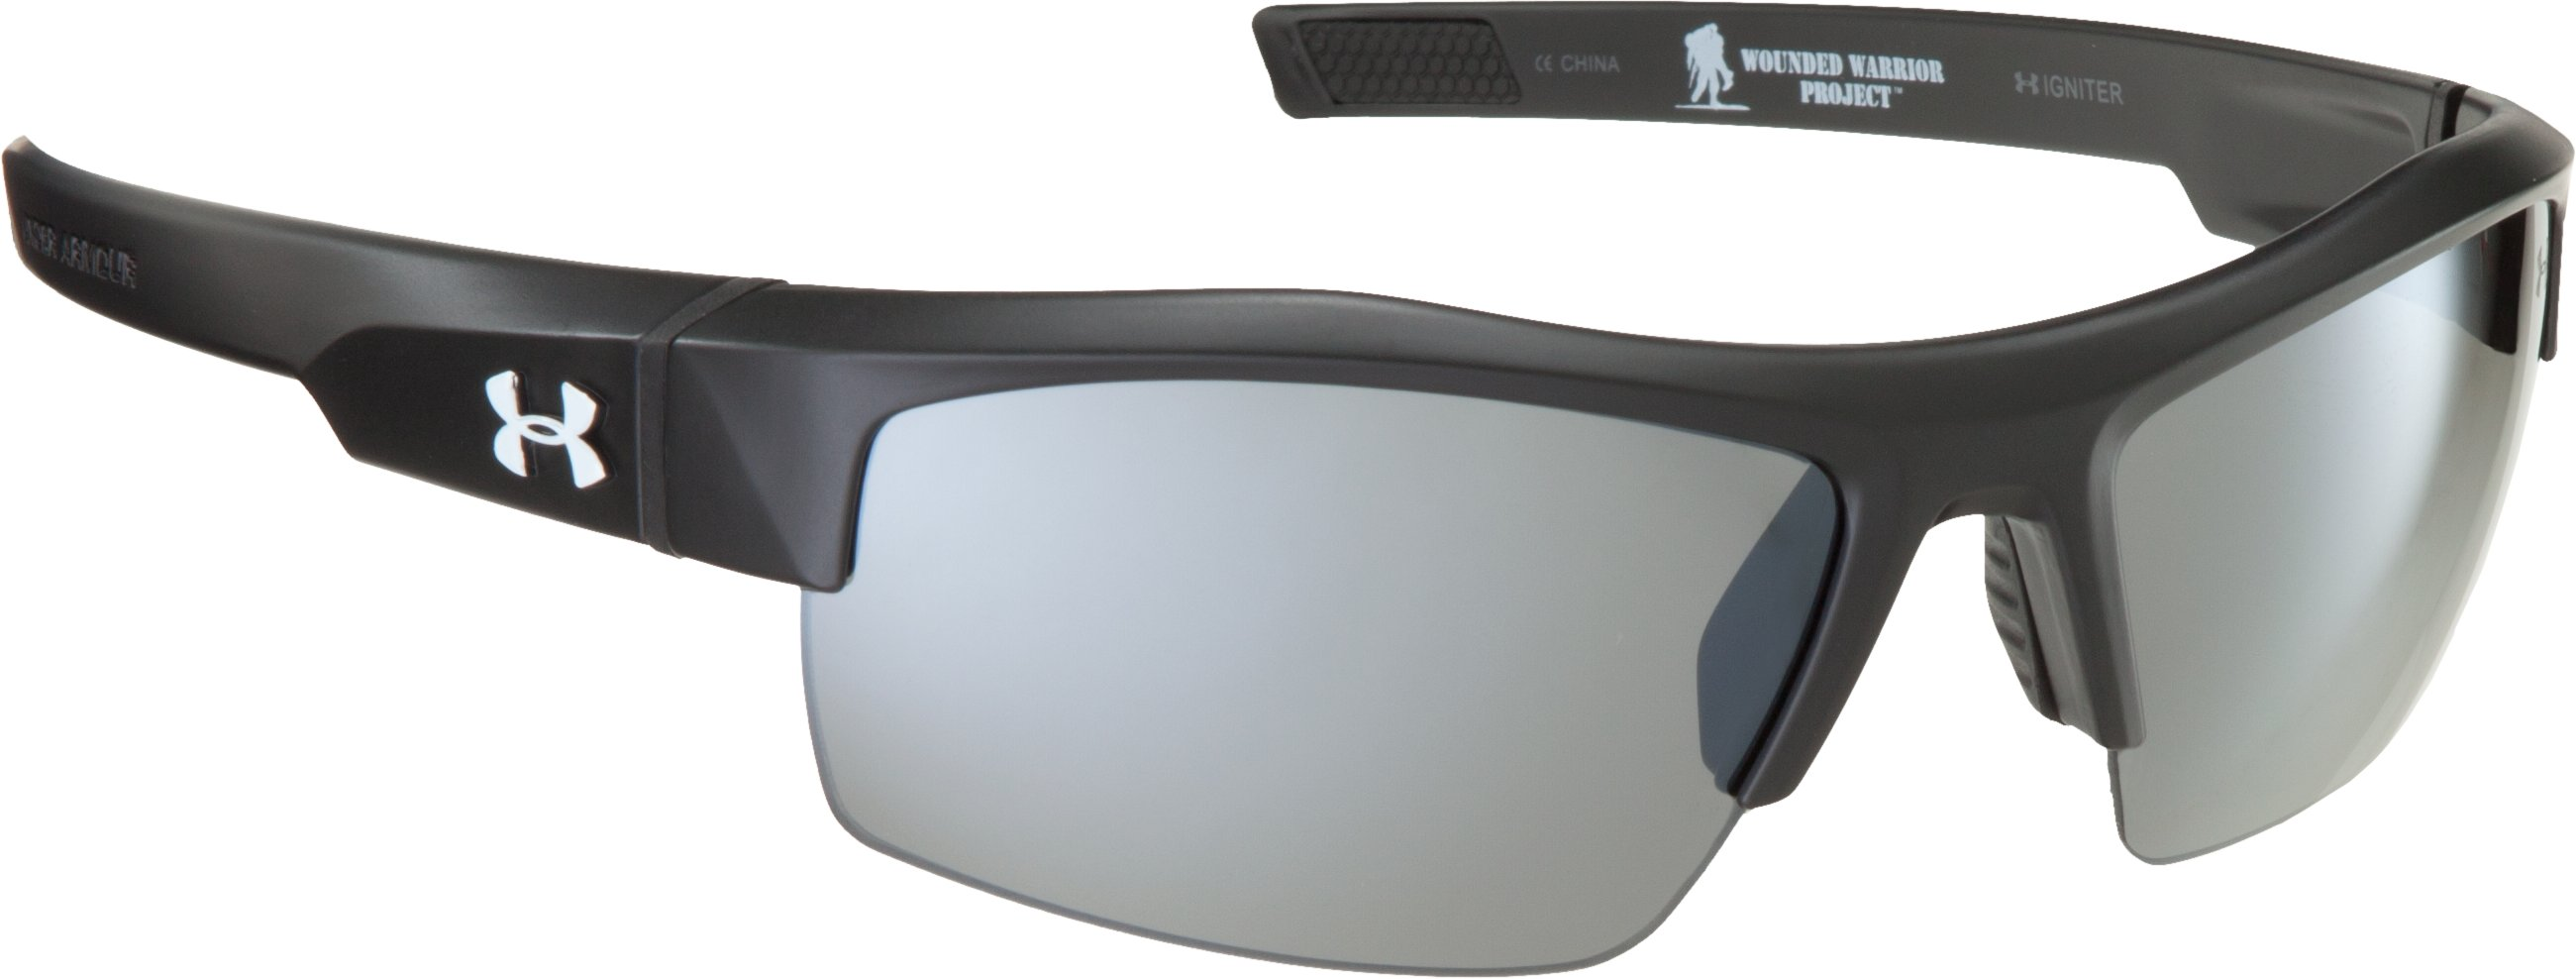 WWP UA Igniter Sunglasses, Satin Black, undefined